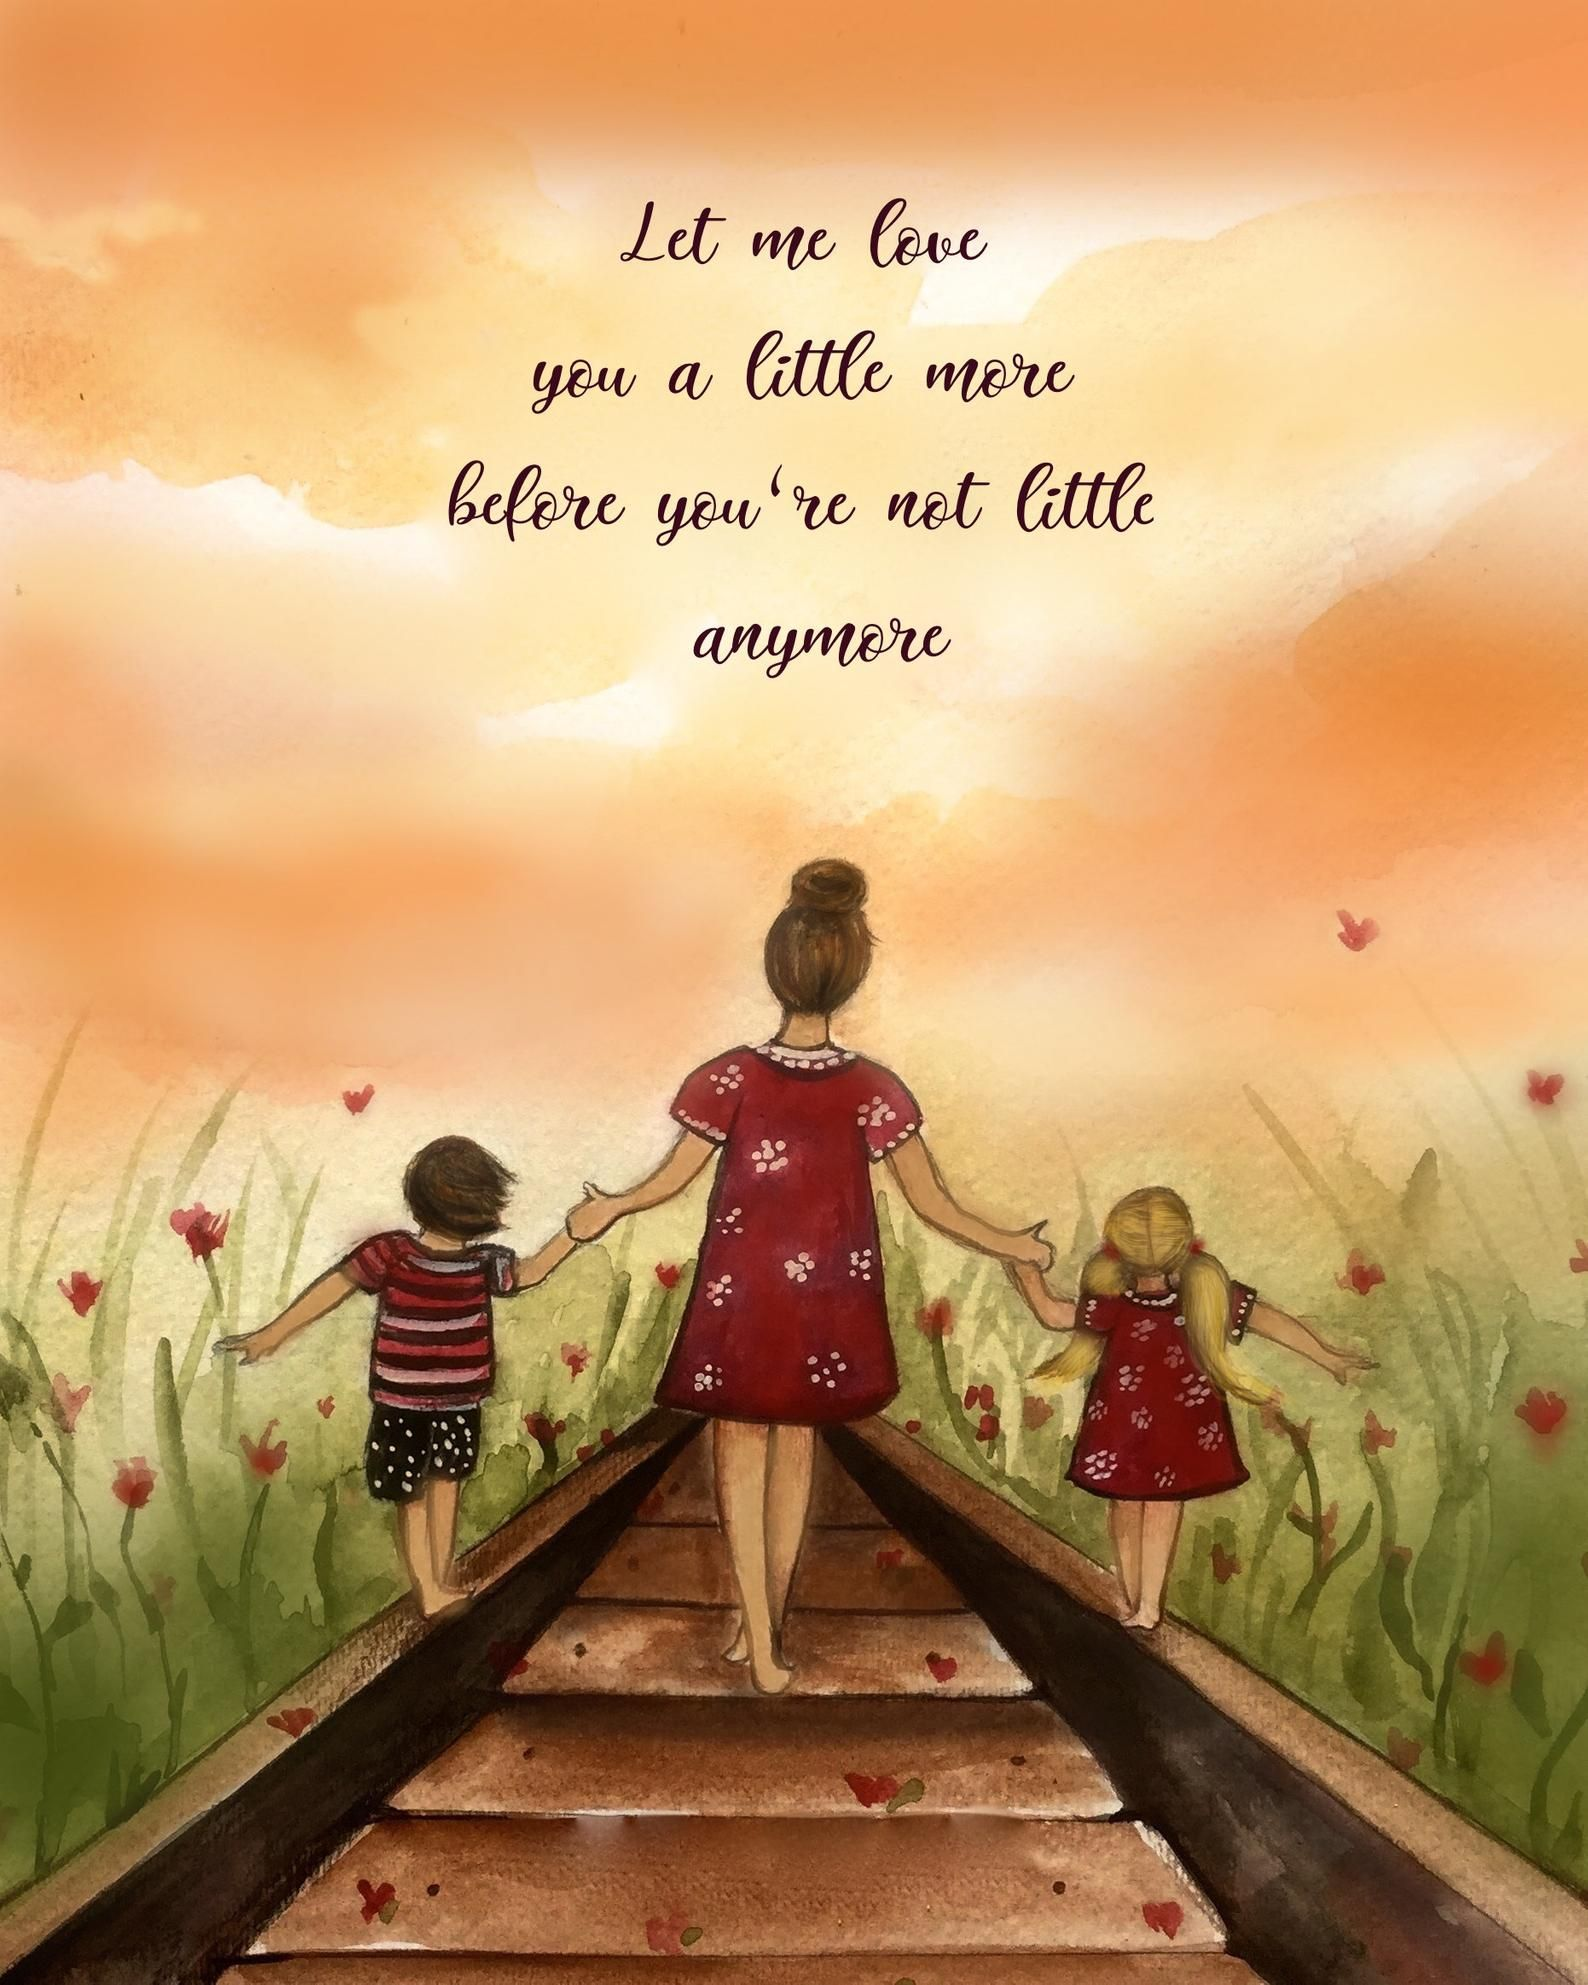 Mother and two children Let me love you a little more before you are not little anymore. - Mother and two children Let me love you a little more before image 0 -